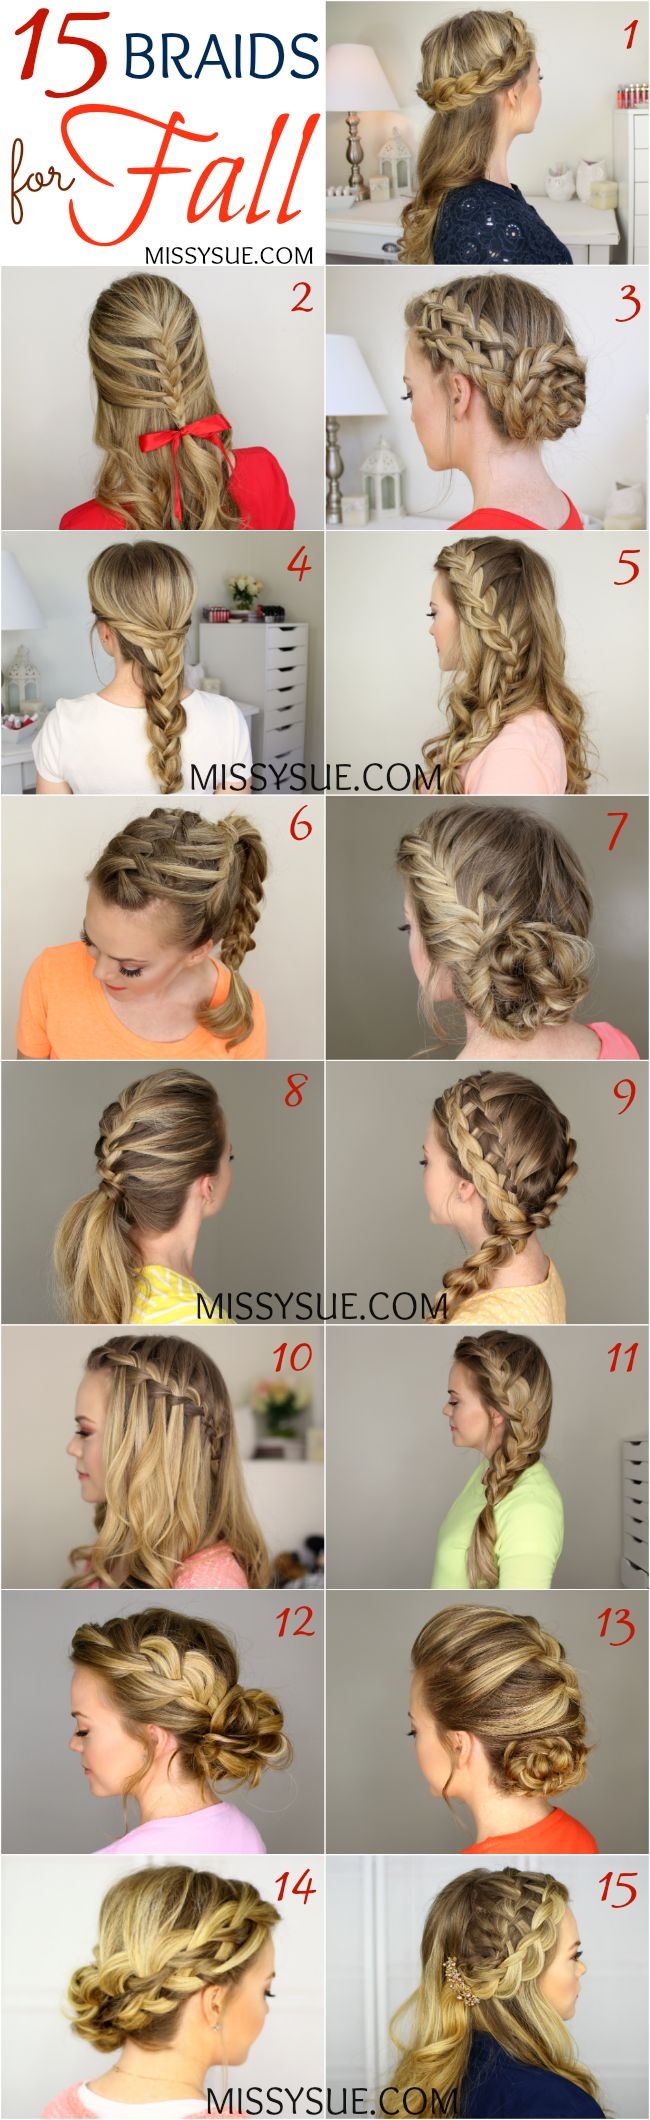 Different braids for long hair